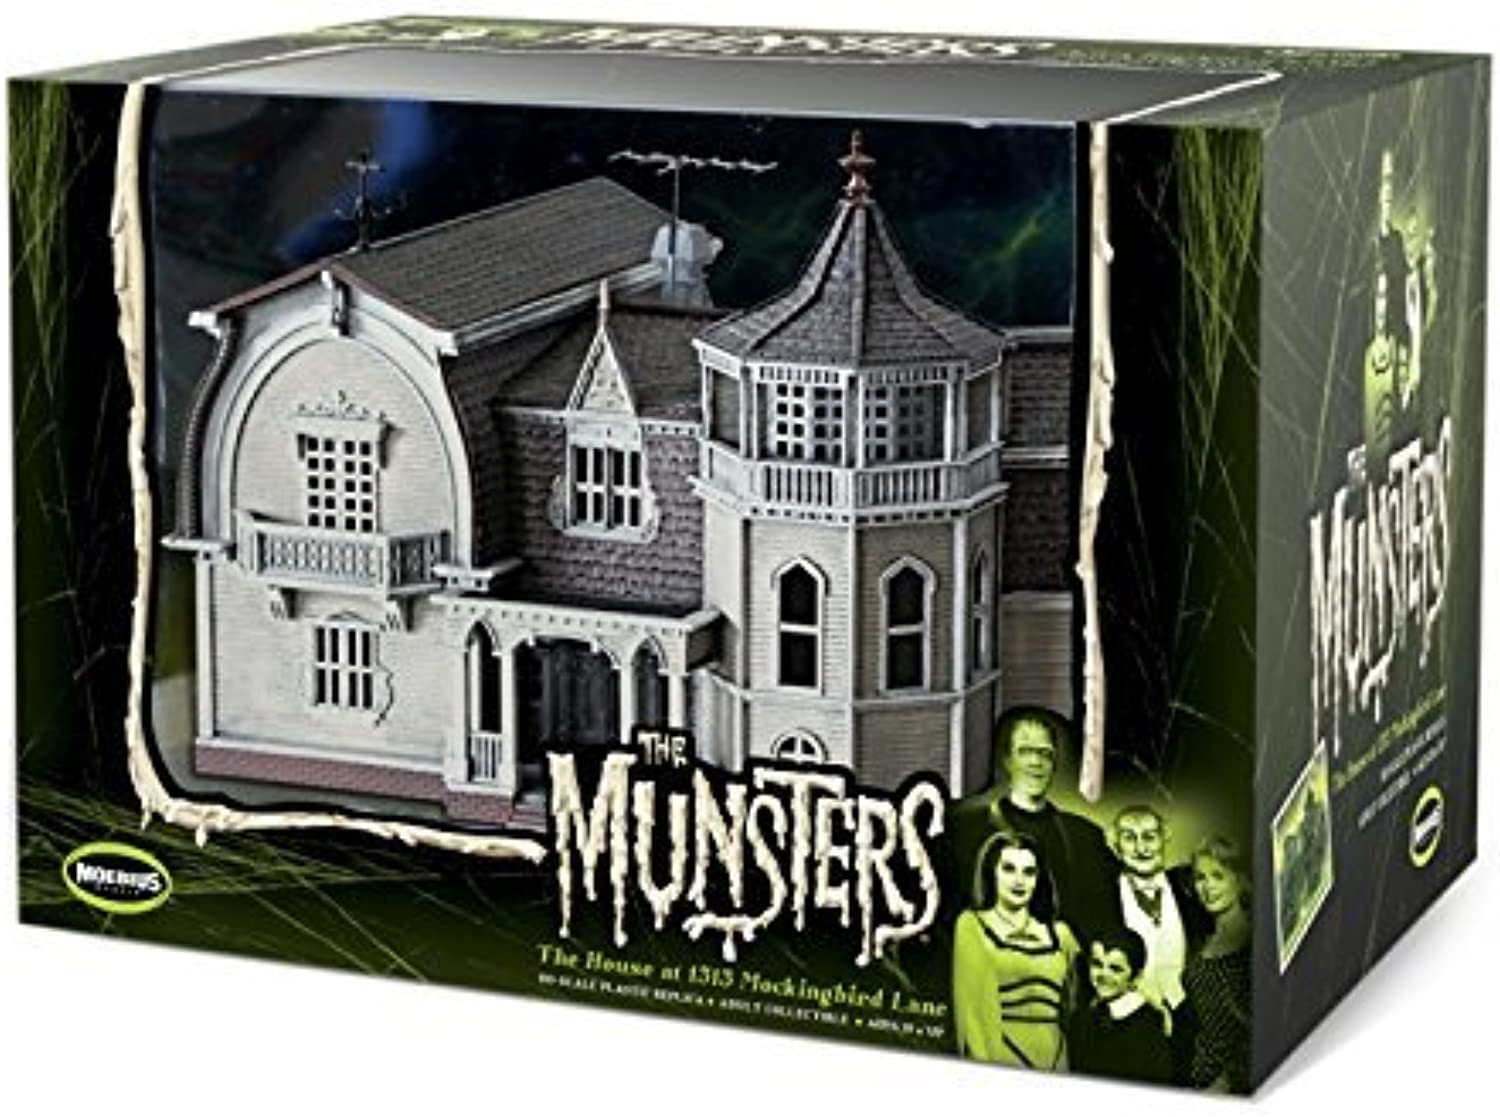 Munsters House Prefinished By Moebius Models Moe2929 by by by The Munsters 7f7e98